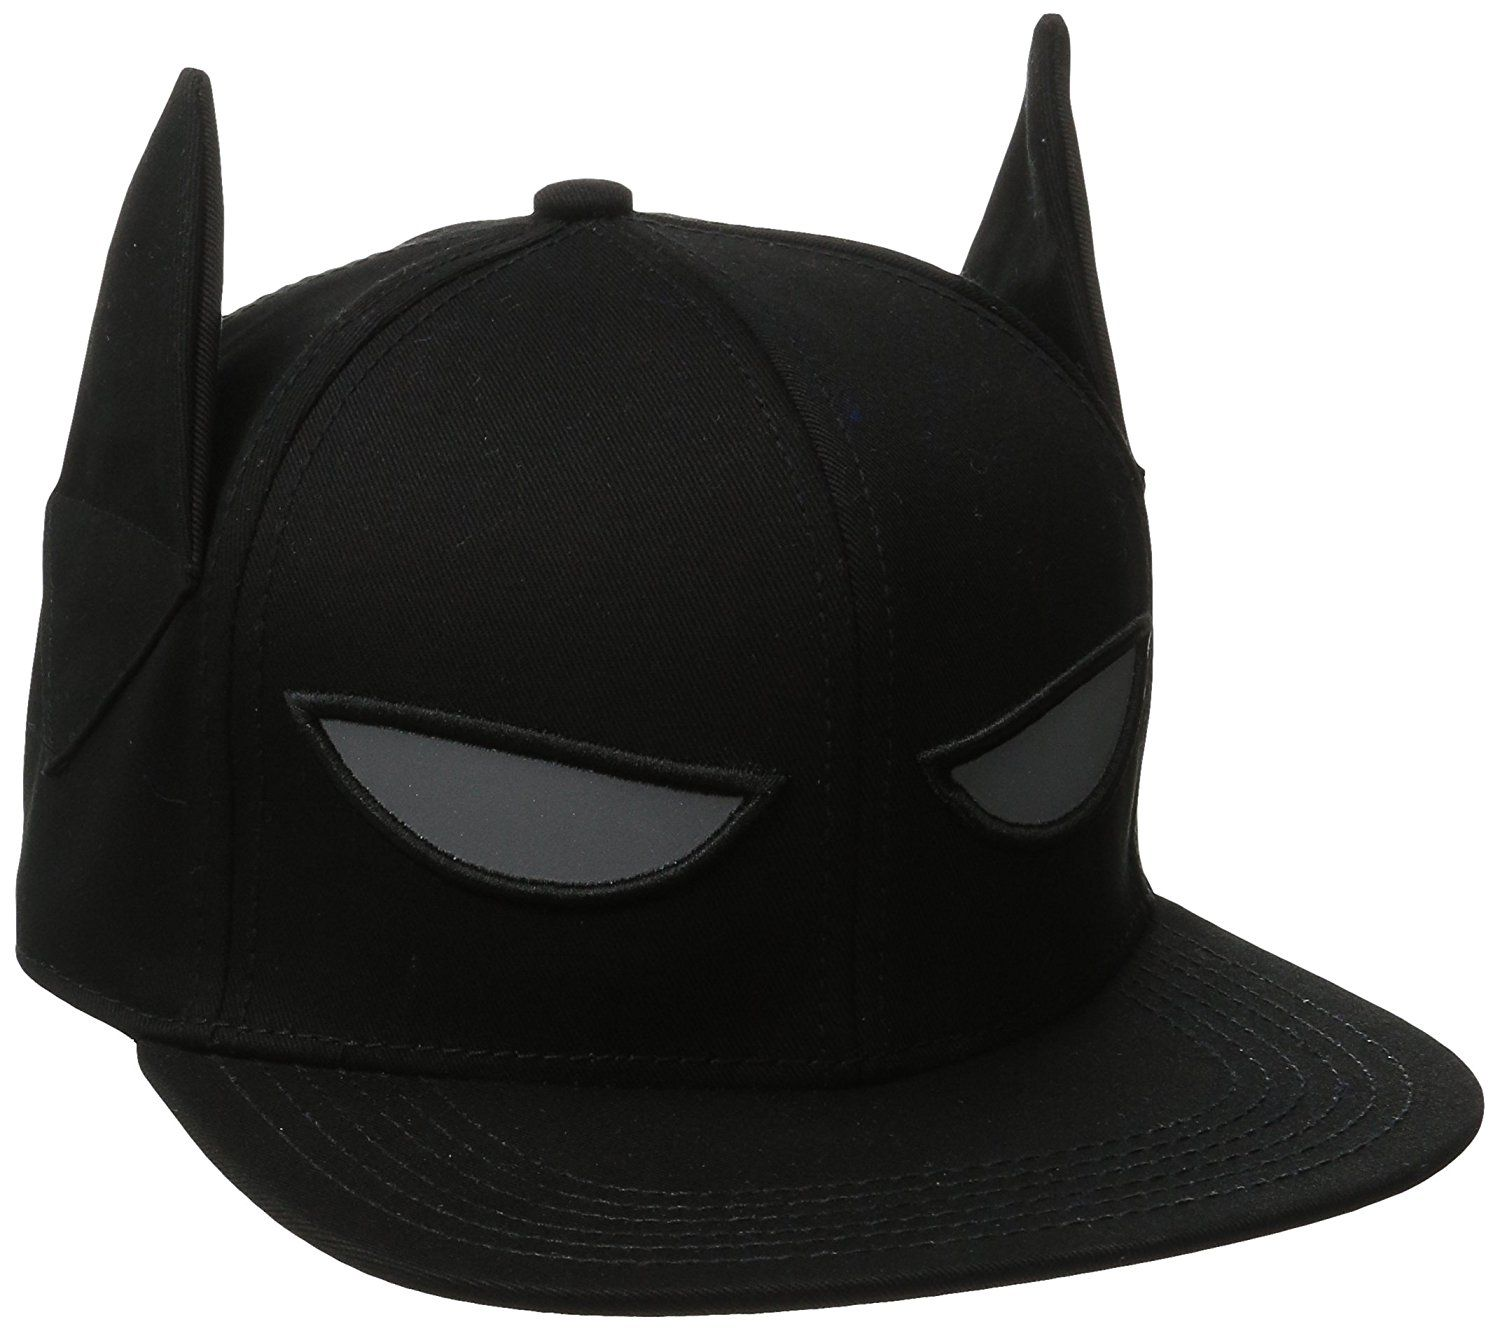 4e808765 Batman Men's 3D Ear and Reflective Eyes Flat Brim Cap, Black, One Size:  Amazon.in: Clothing & Accessories